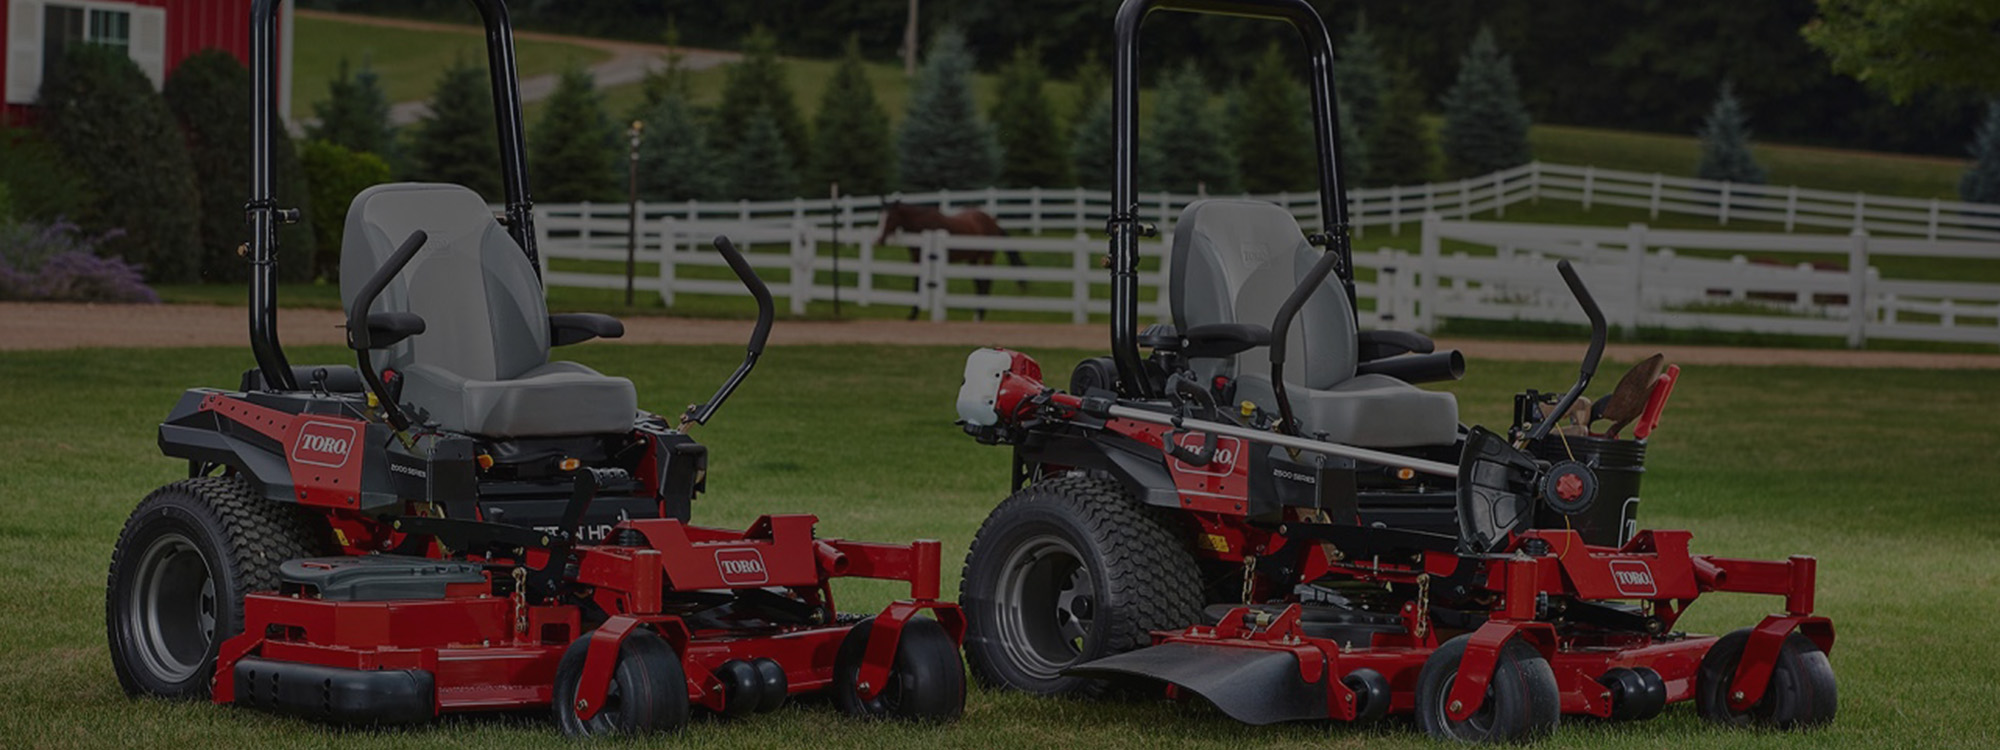 Toro Titan HD commercial zero turn mowers